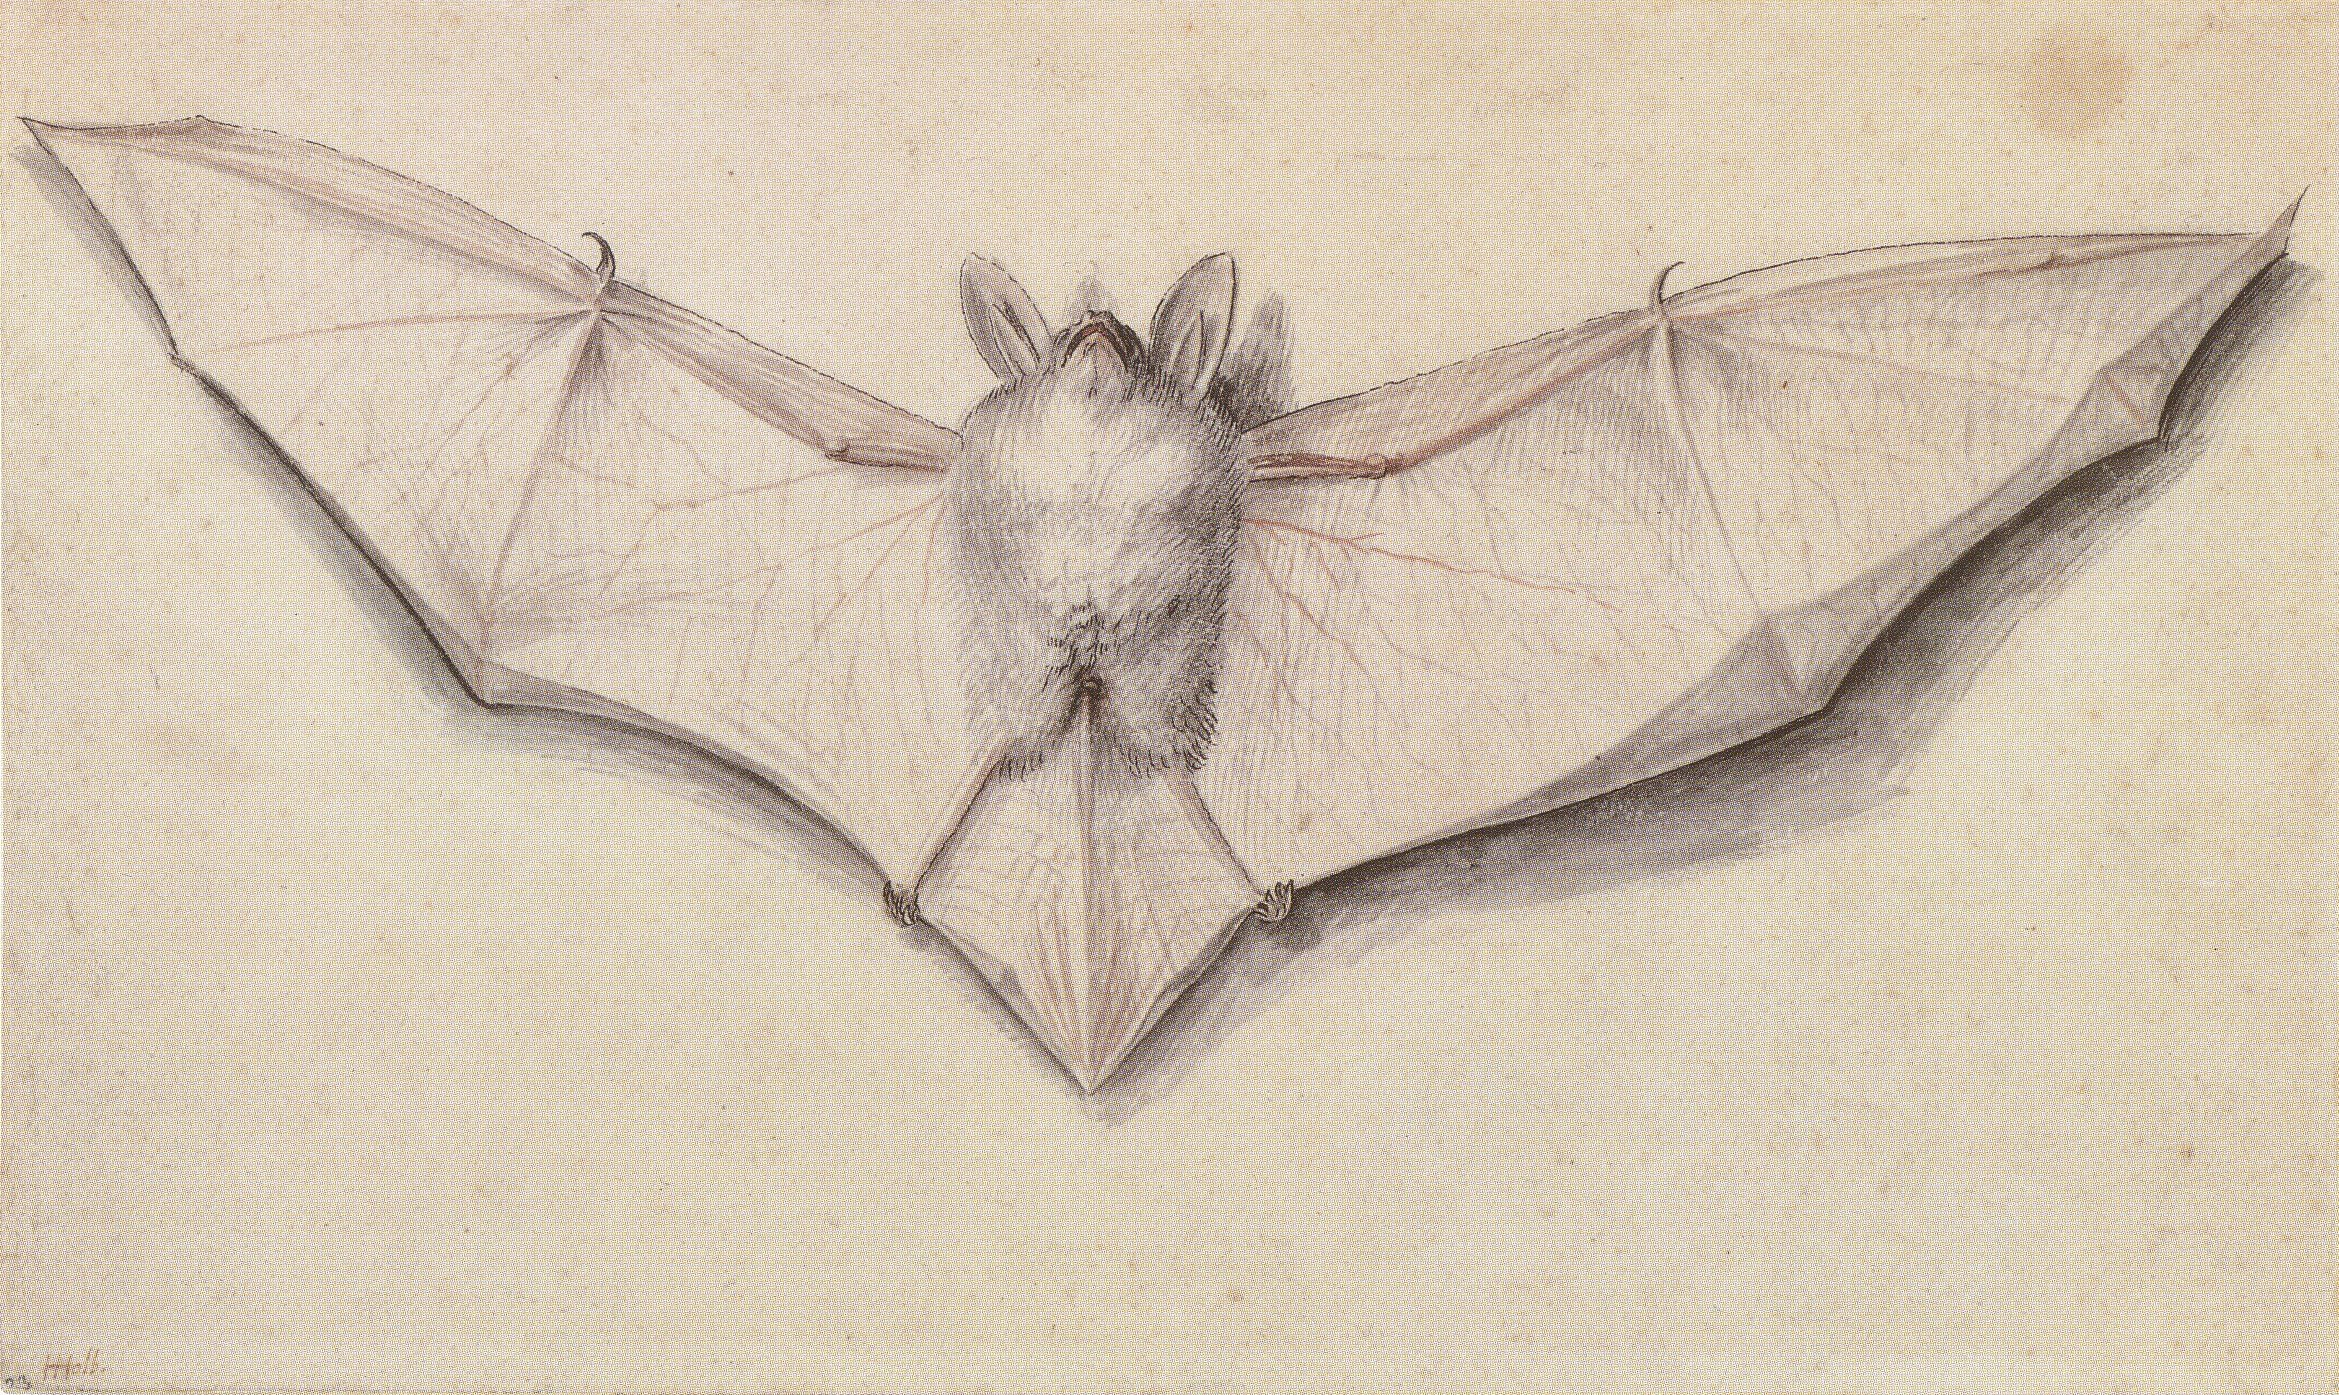 Study of a bat with outspread wings. с.1523